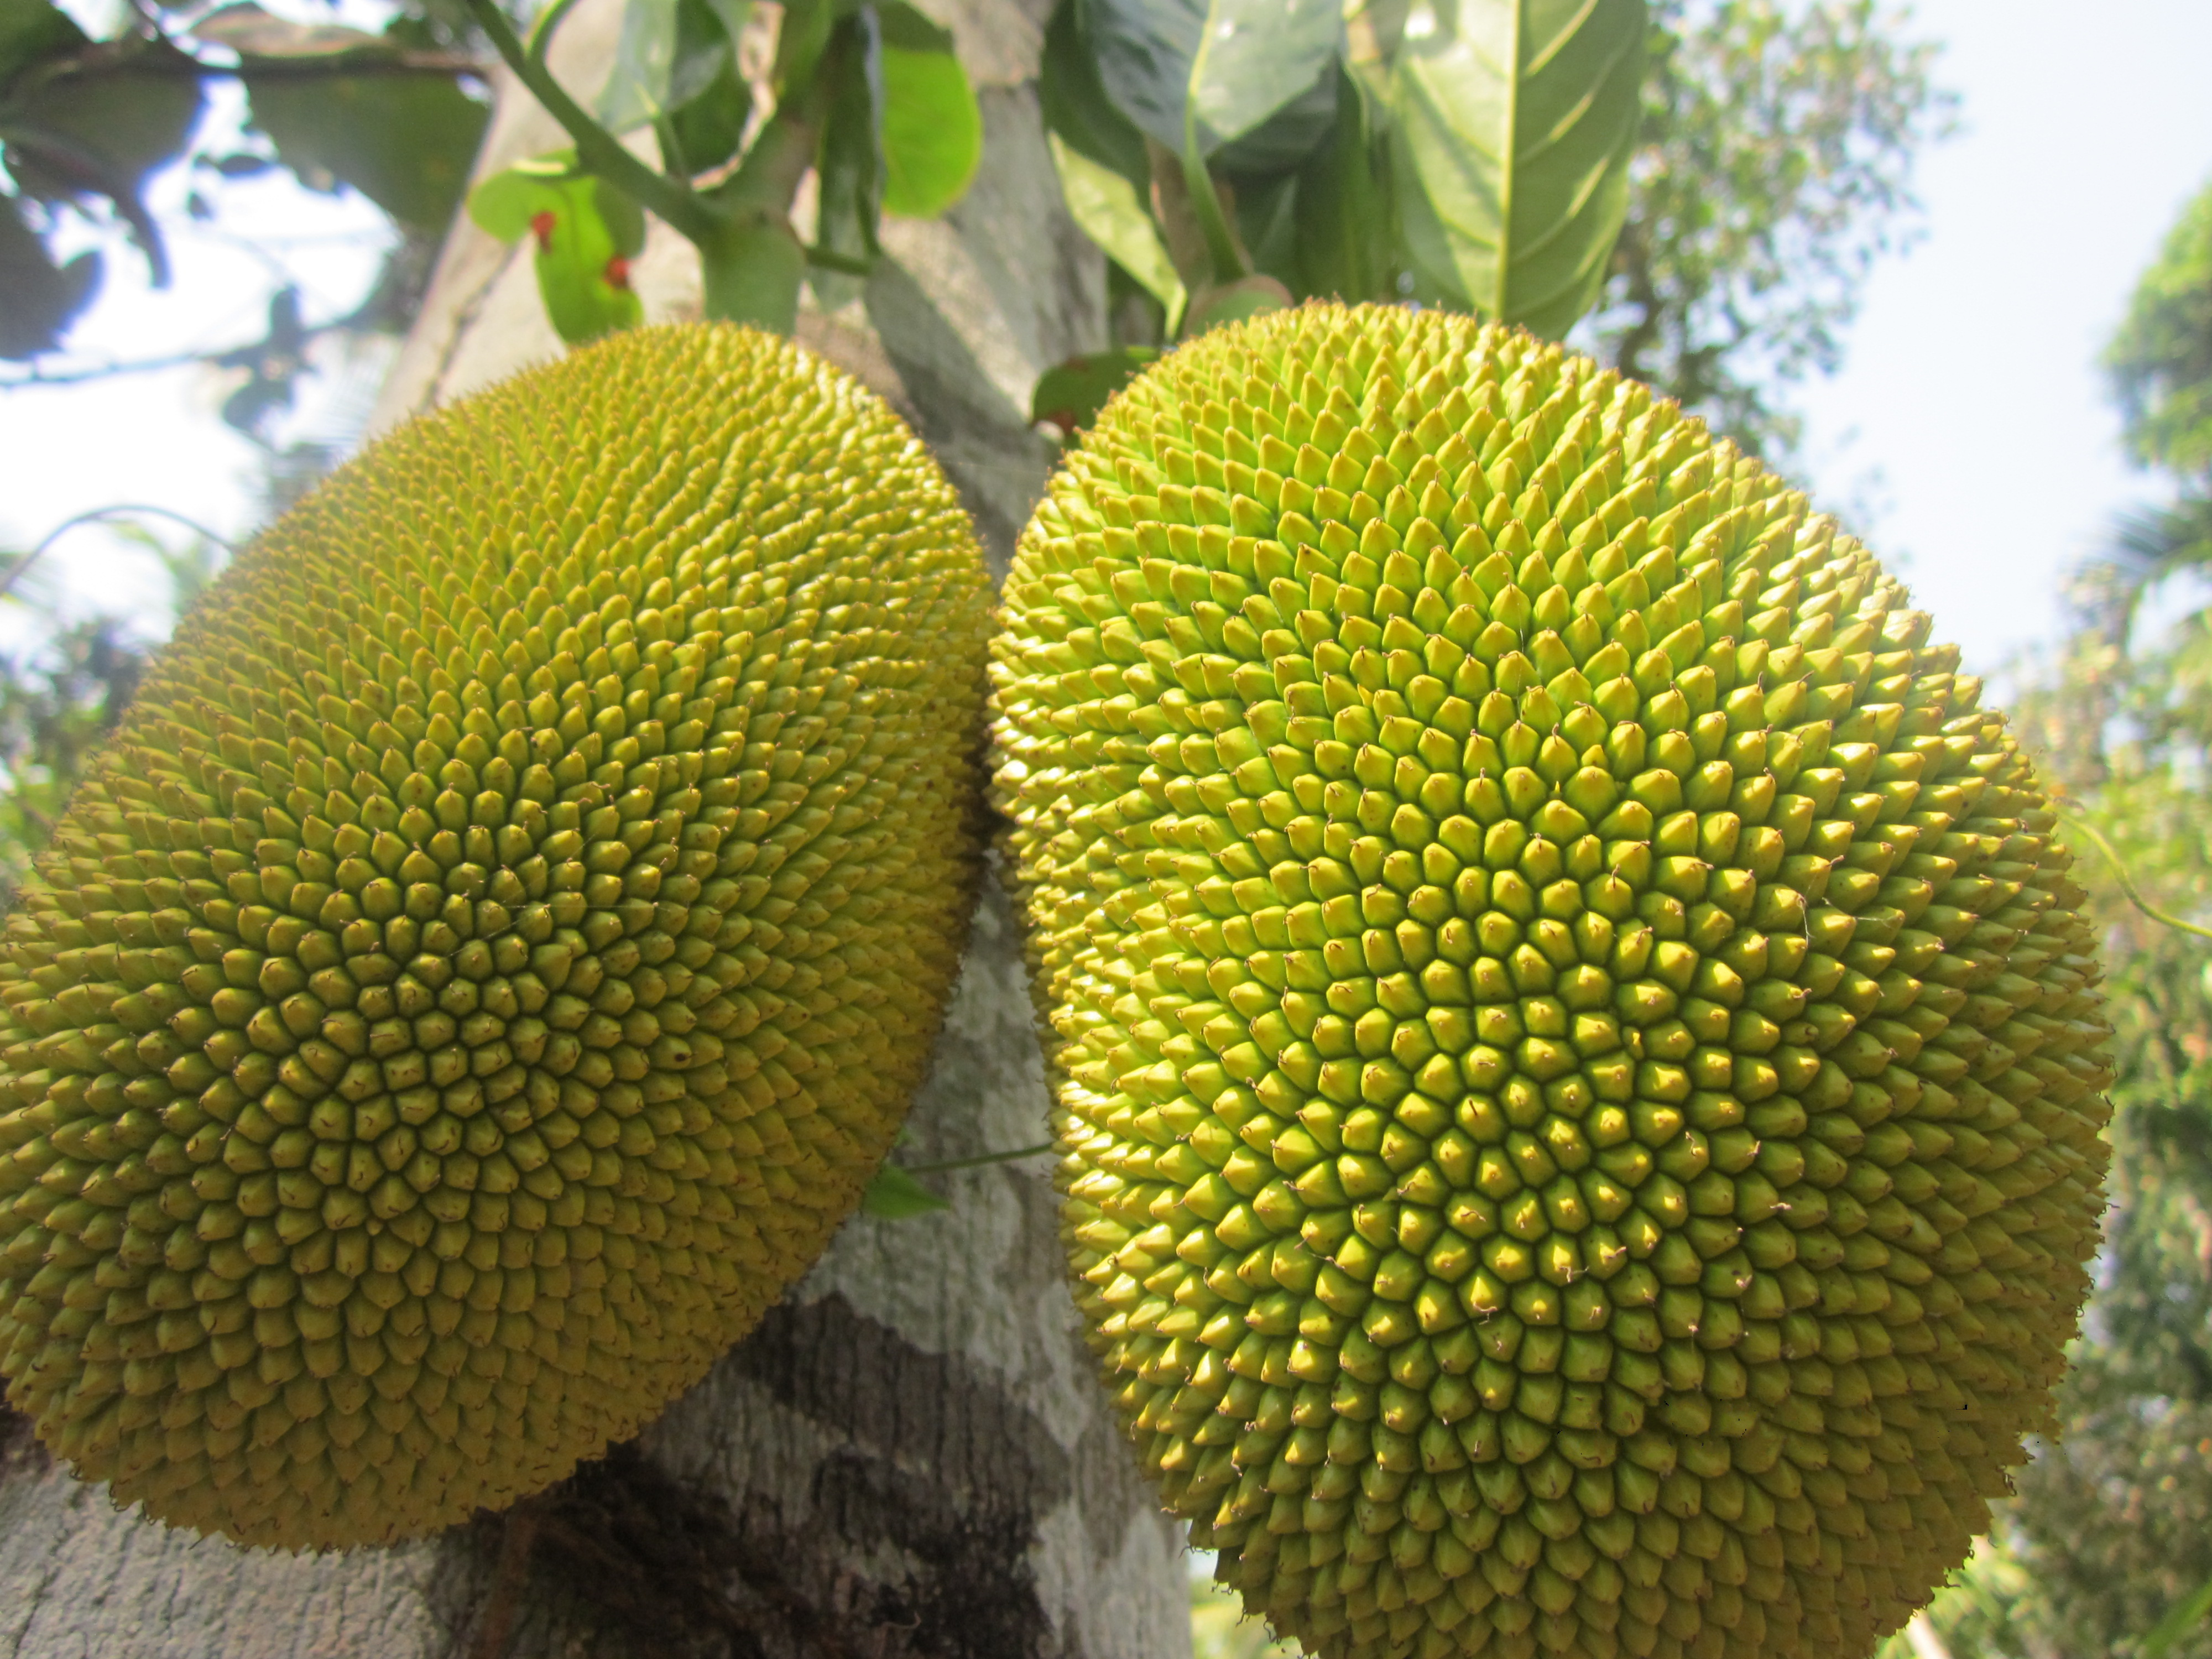 jackfruit- background, history, and origin of a unique fruit essay Rambutan facts and information commonly known as rambutan it is known botanically as nephelium lappaceum the rambutan is a tropical tree which belongs to the sapindaceae family and also the fruit of this tree.